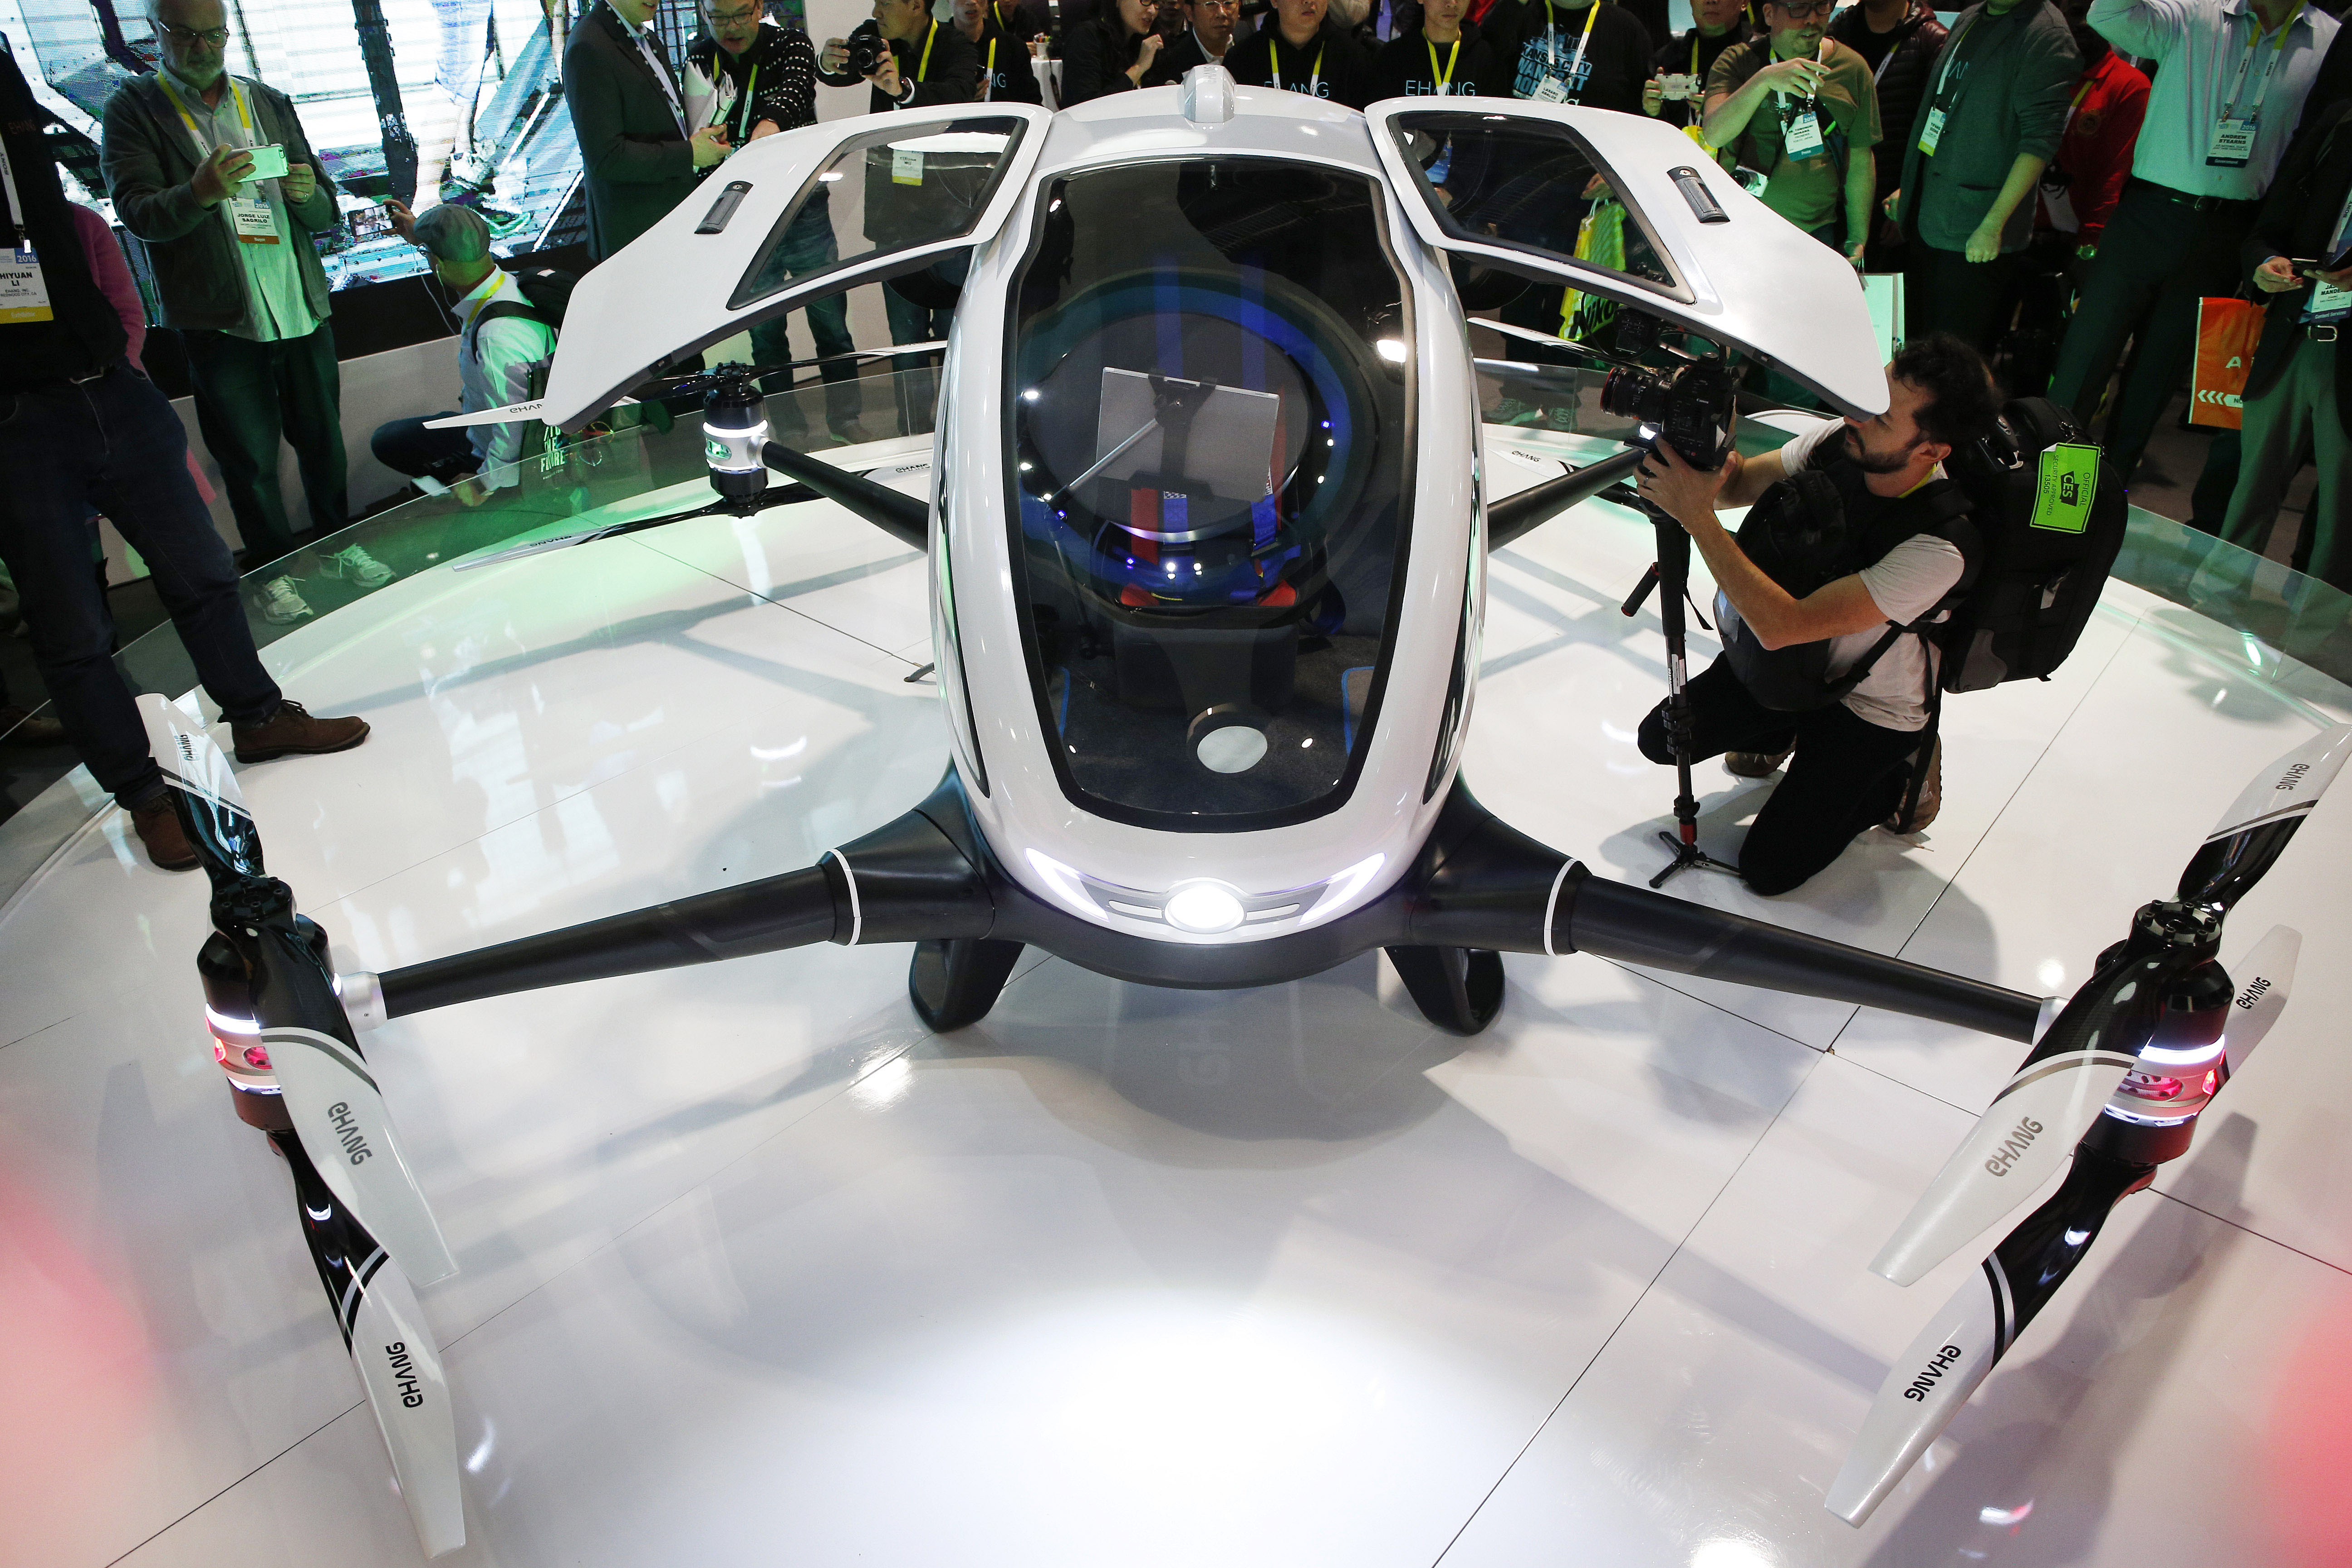 The EHang 184 autonomous aerial vehicle is unveiled at the EHang booth at CES International, Wednesday, Jan. 6, 2016, in Las Vegas, Nevada. (AP)